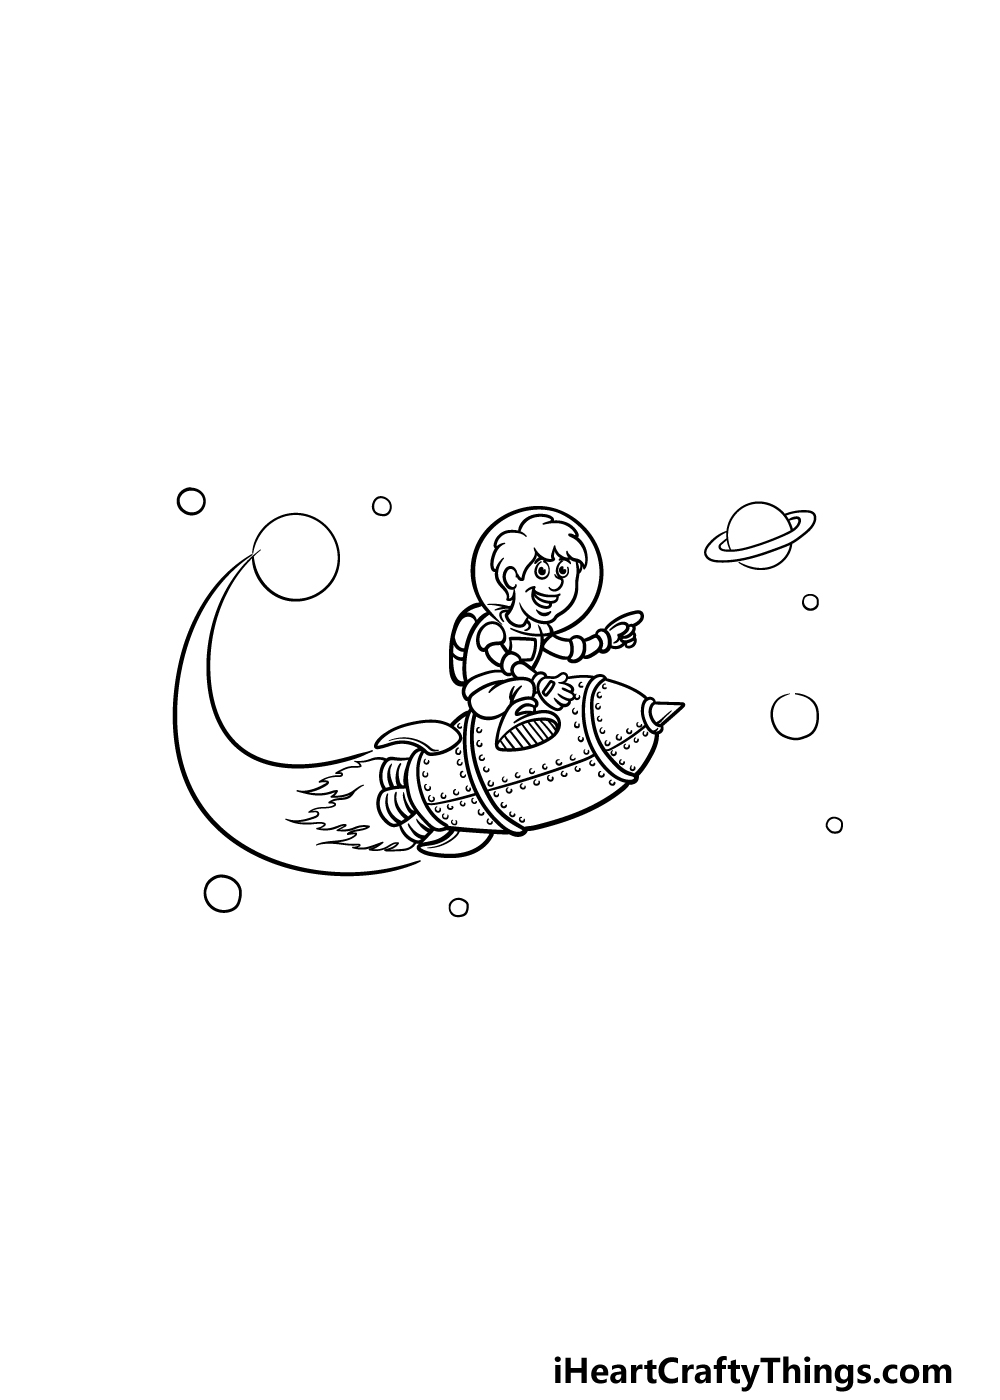 drawing space step 4